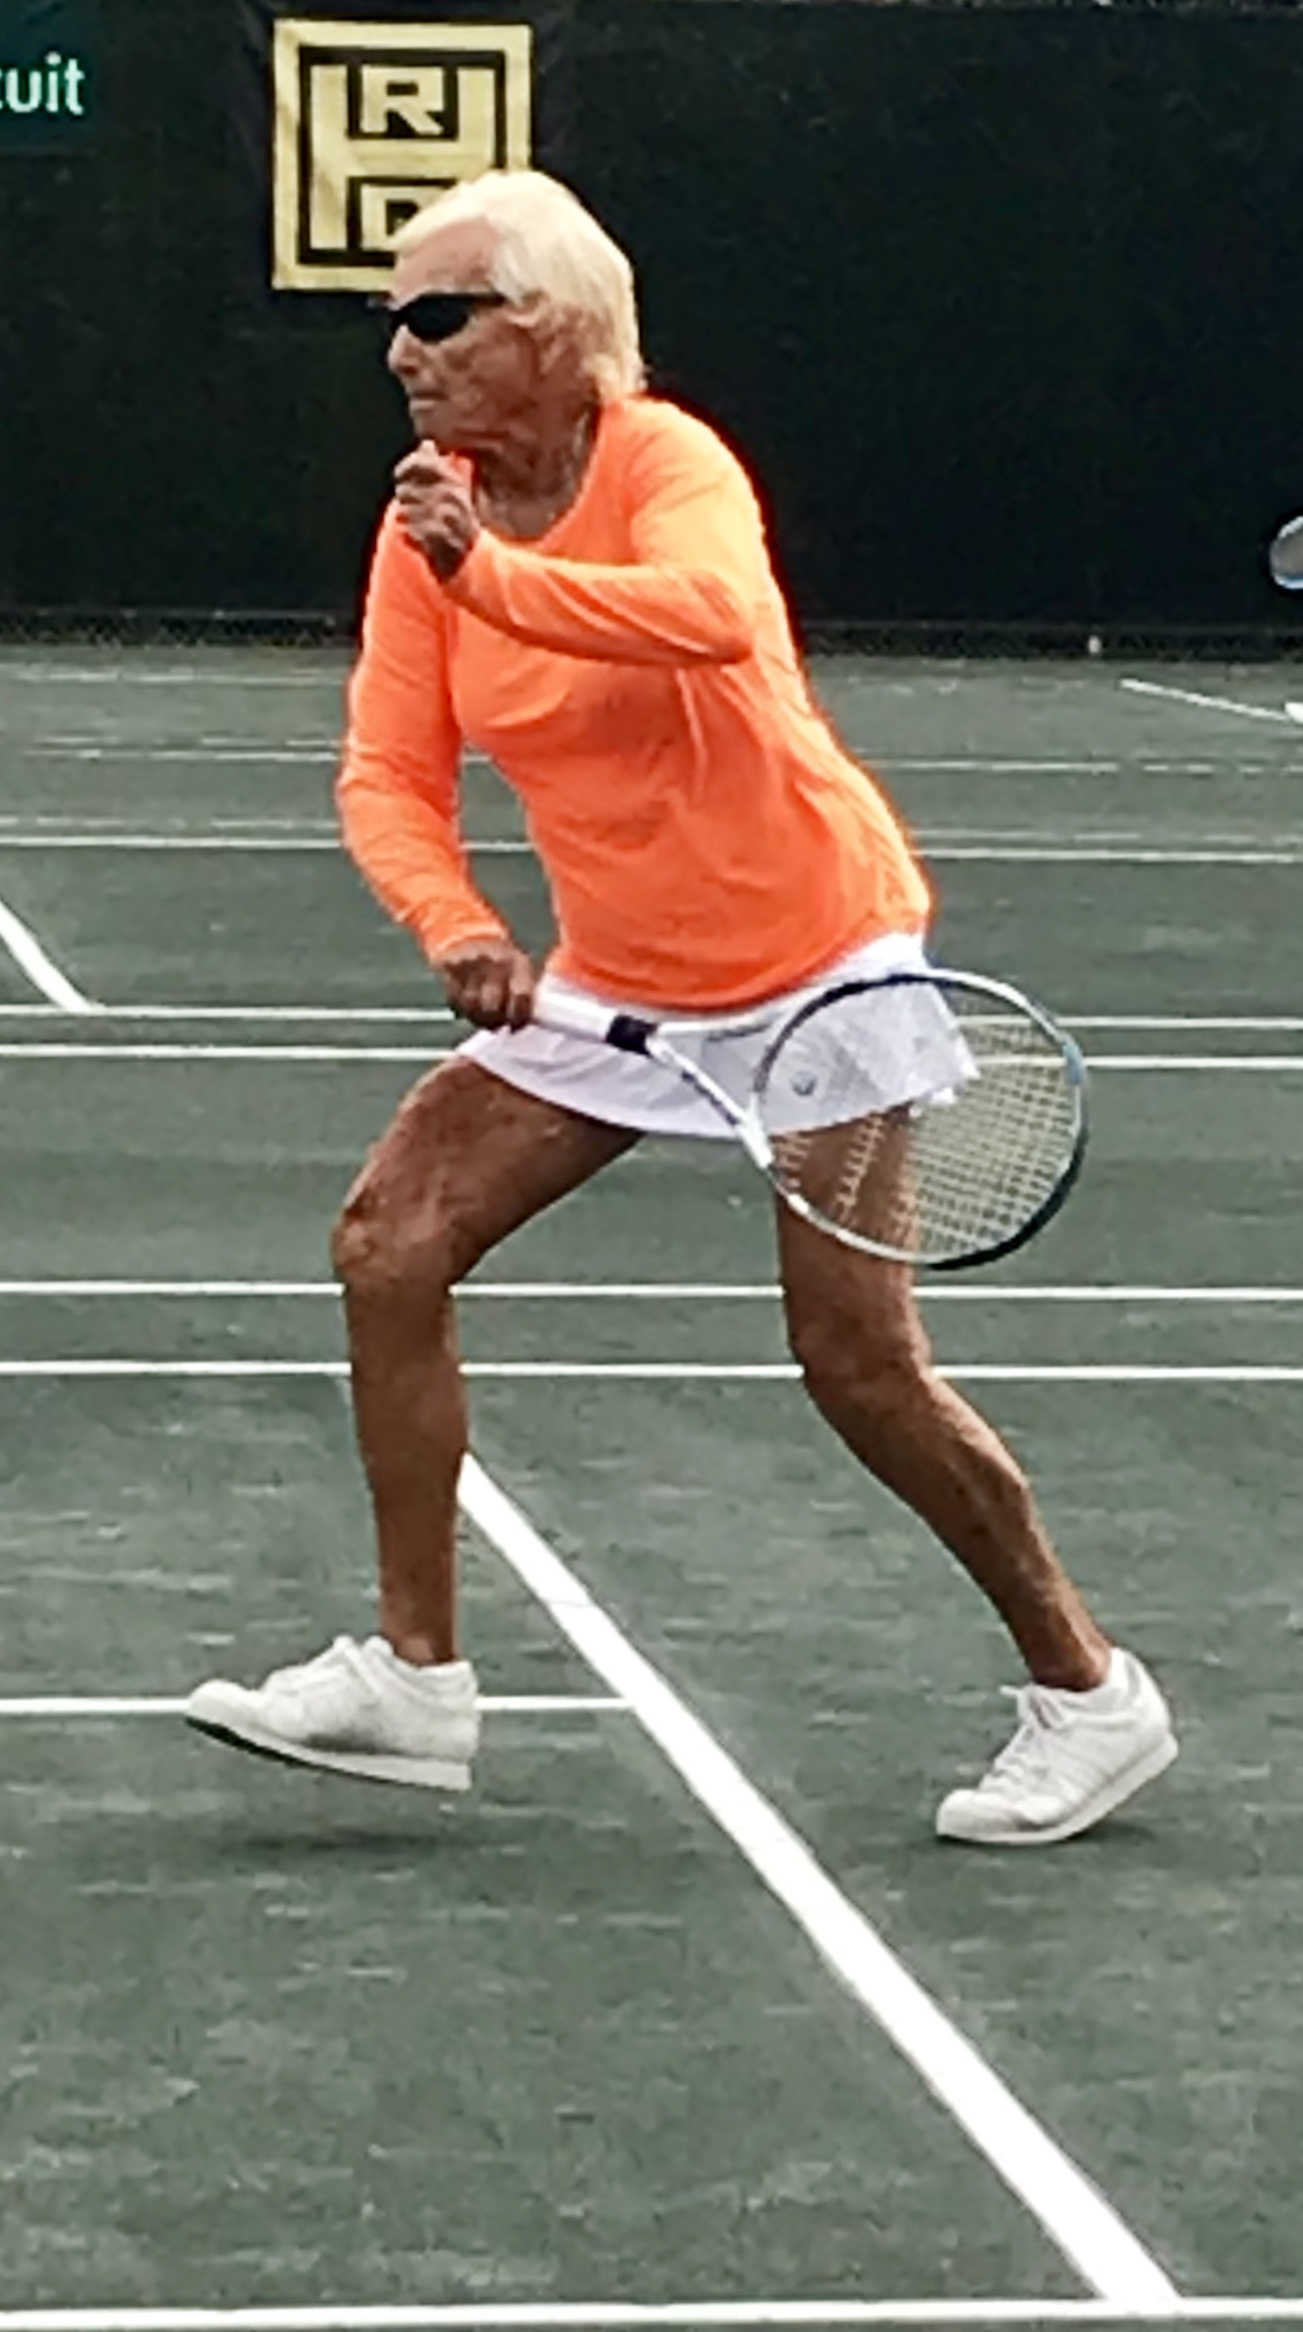 Jane Lutz approaching the net at the Women's Clay Court National in Houston